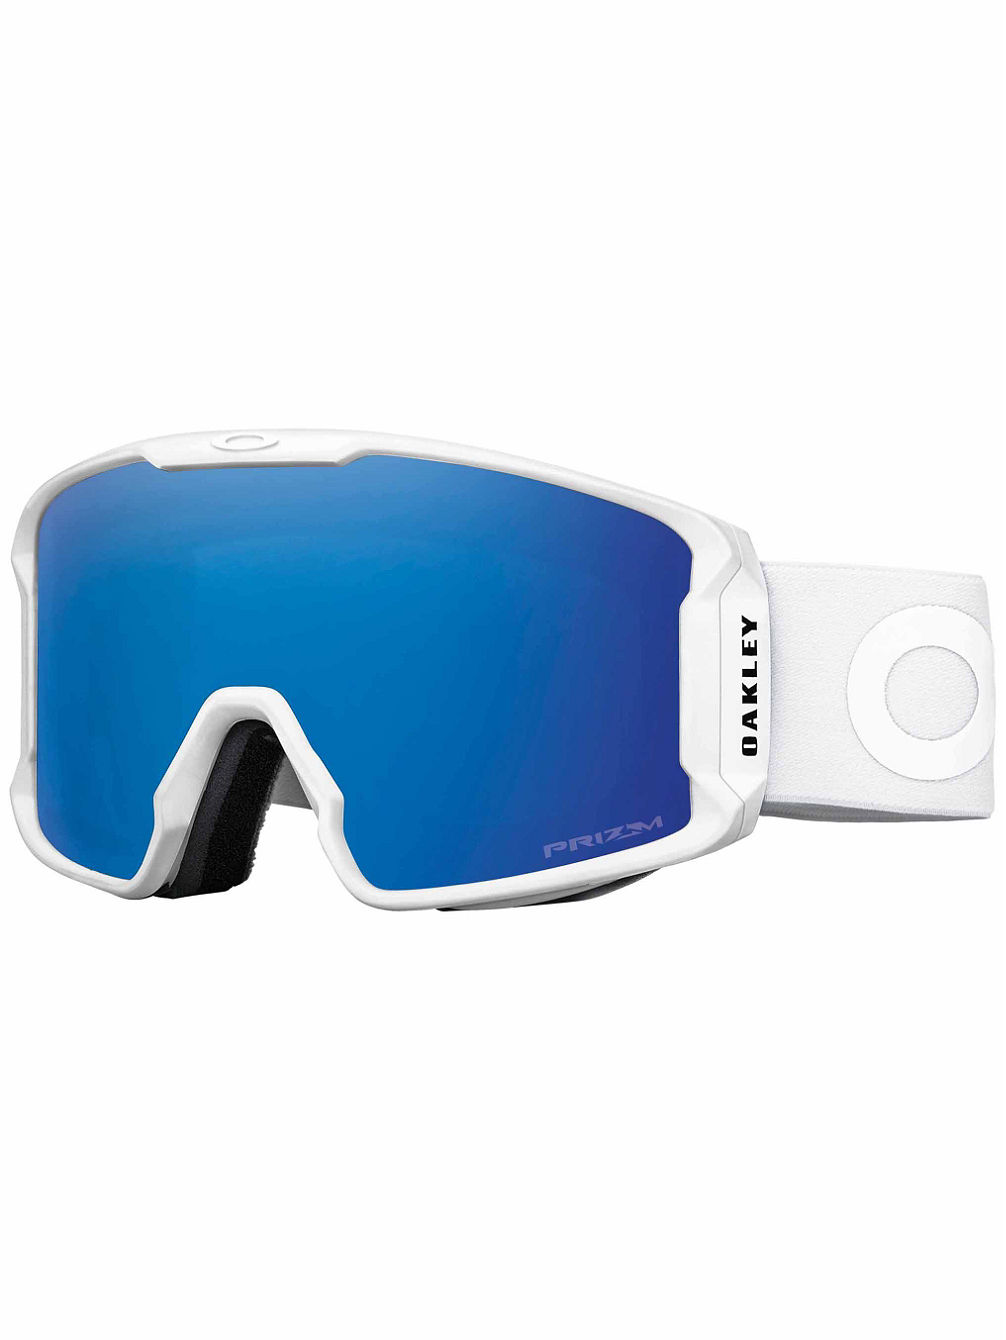 Line Miner Factory Pilot Whiteout Goggle